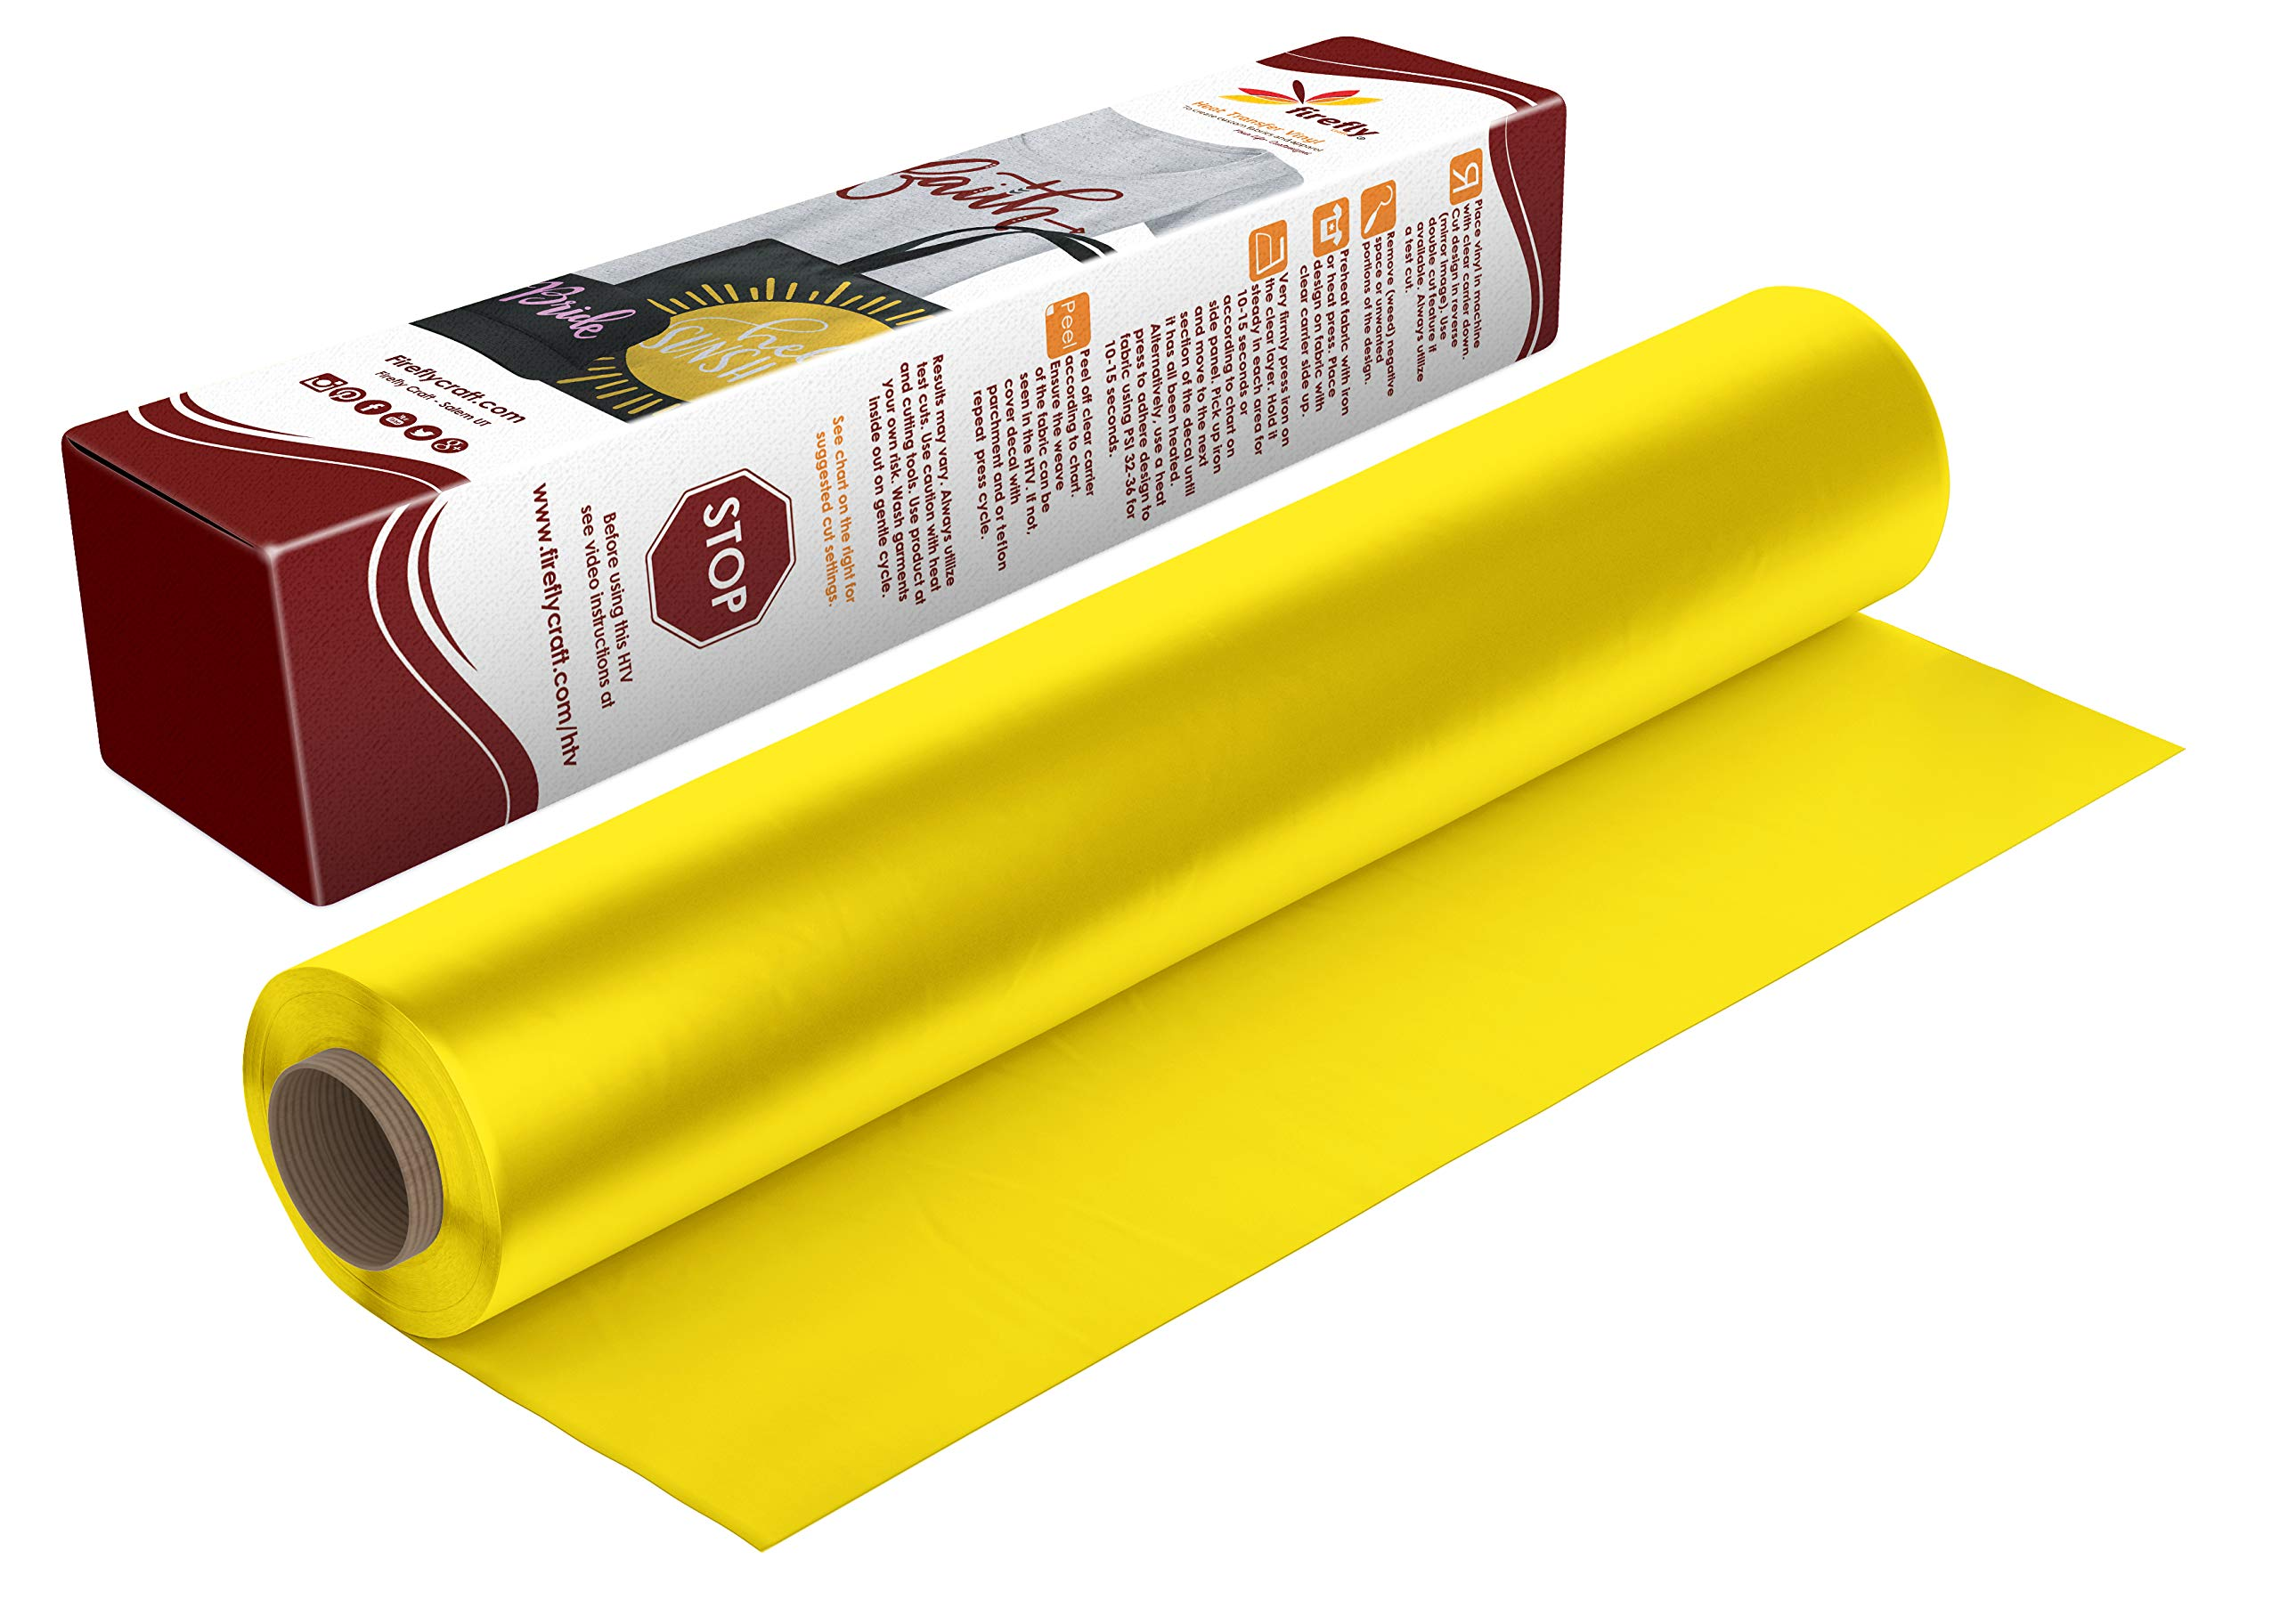 Firefly Craft Regular Yellow Heat Transfer Vinyl   Yellow HTV Vinyl   Yellow Iron On Vinyl for Cricut and Silhouette   5 Feet by 12.25 Roll   Heat Press Vinyl for Shirts